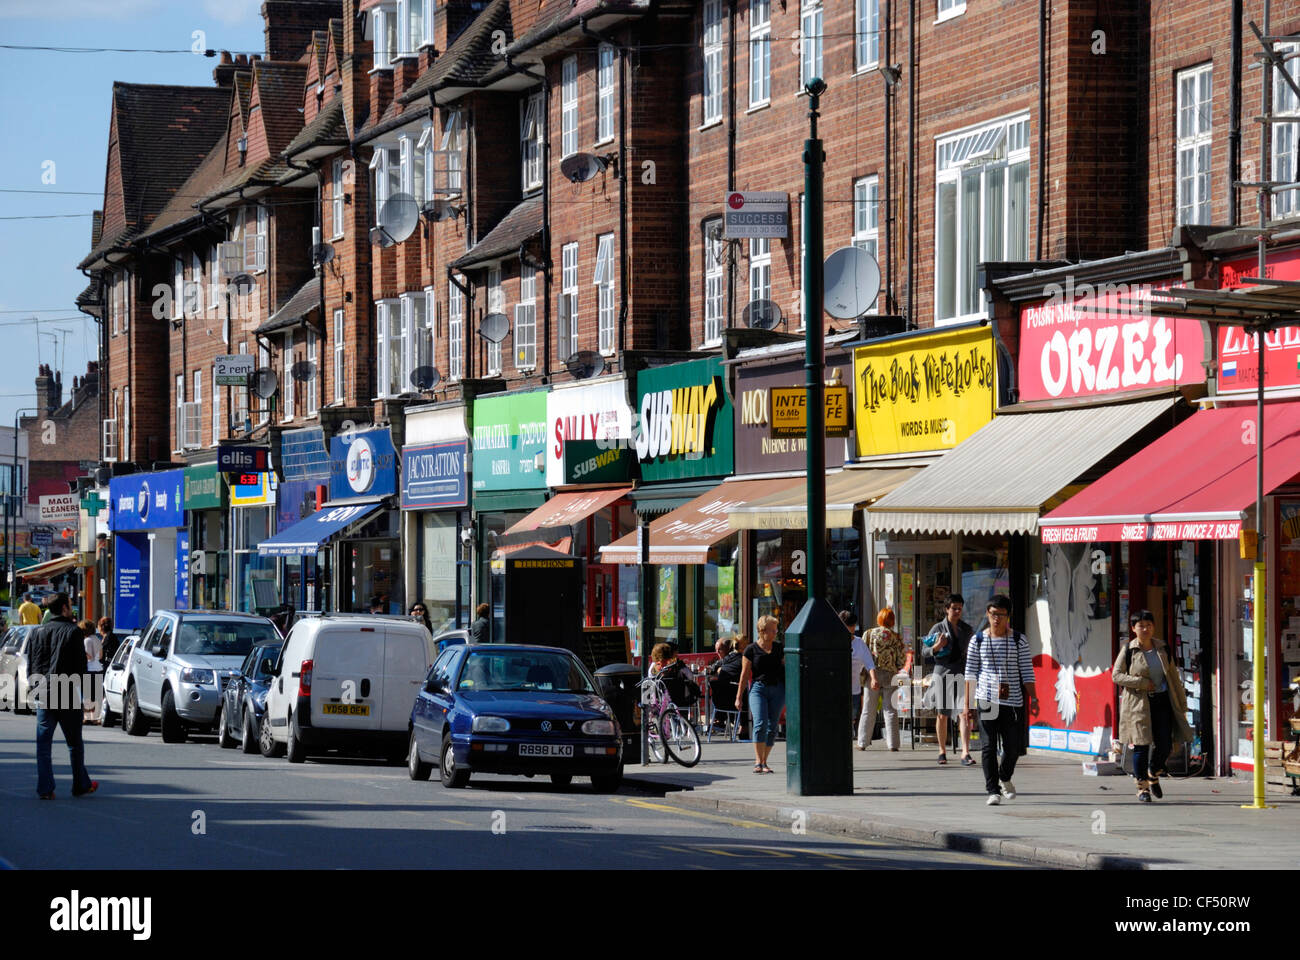 A variety of shopfronts on Golders Green Road. - Stock Image